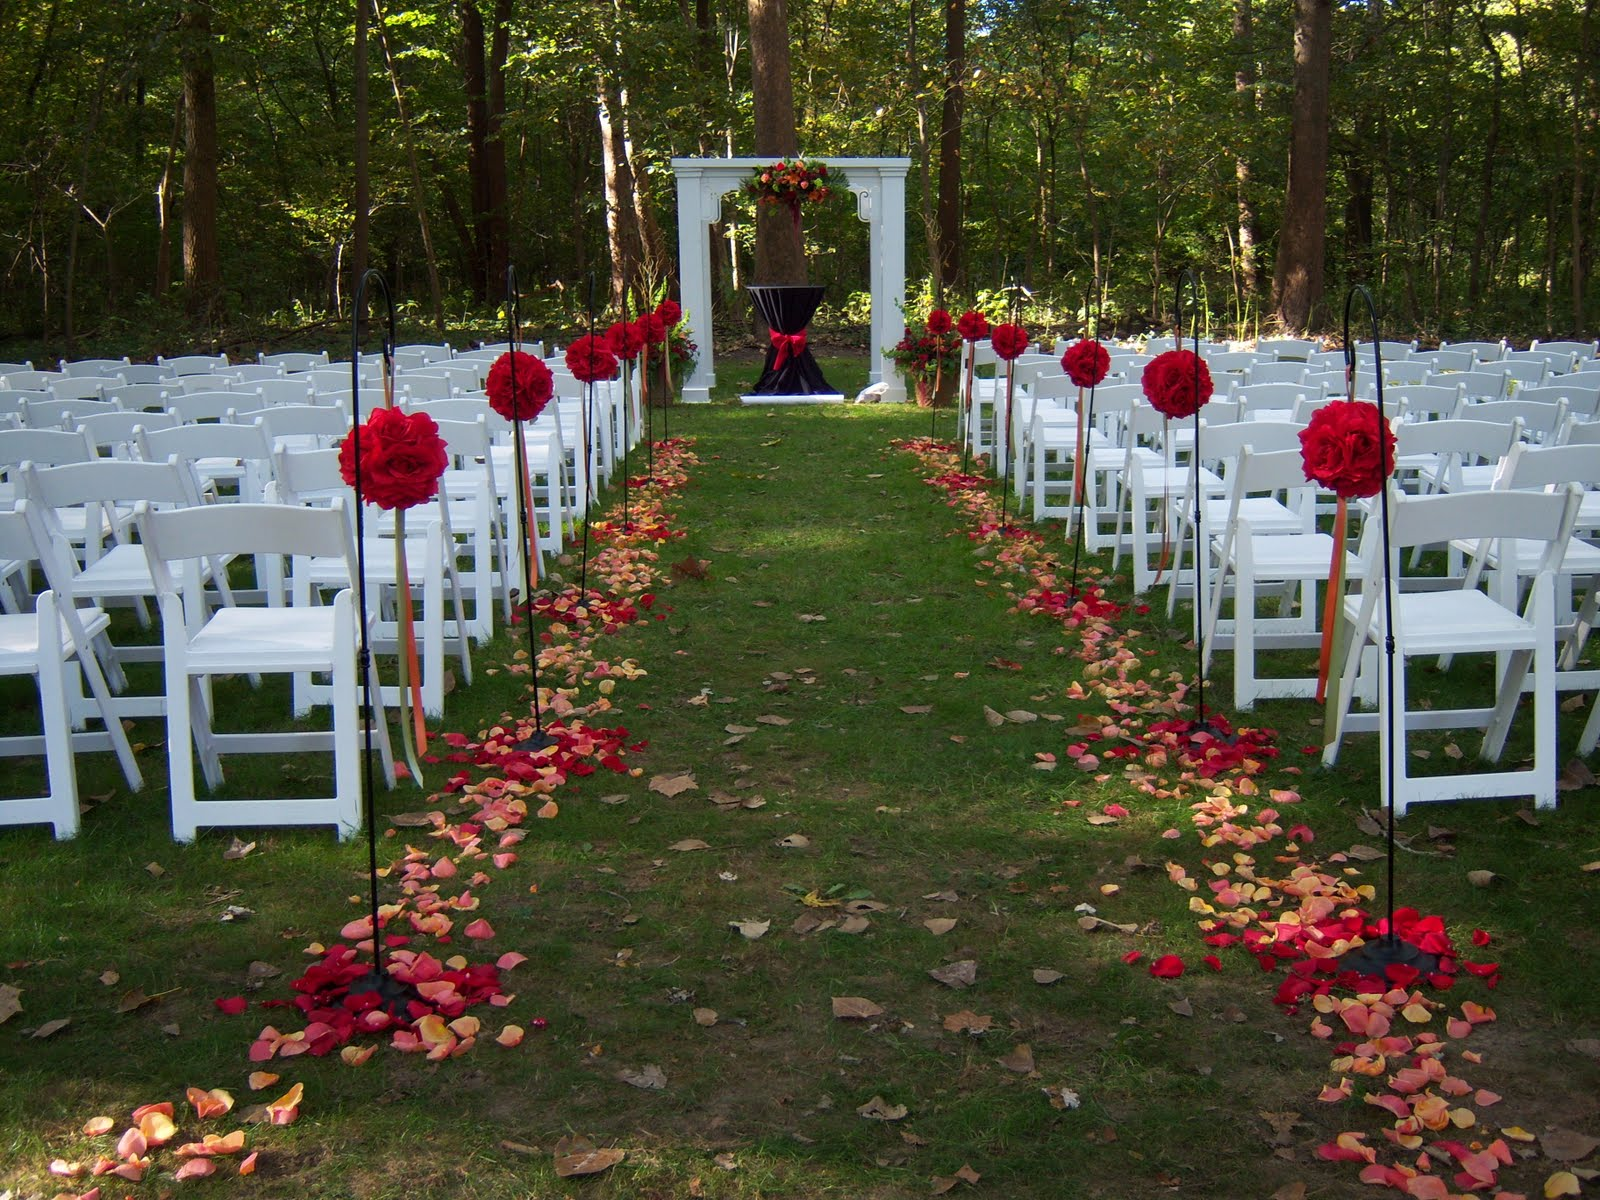 Disco XXYY In da City: Fall Outdoor Wedding | Fall Outdoor Wedding Ideas